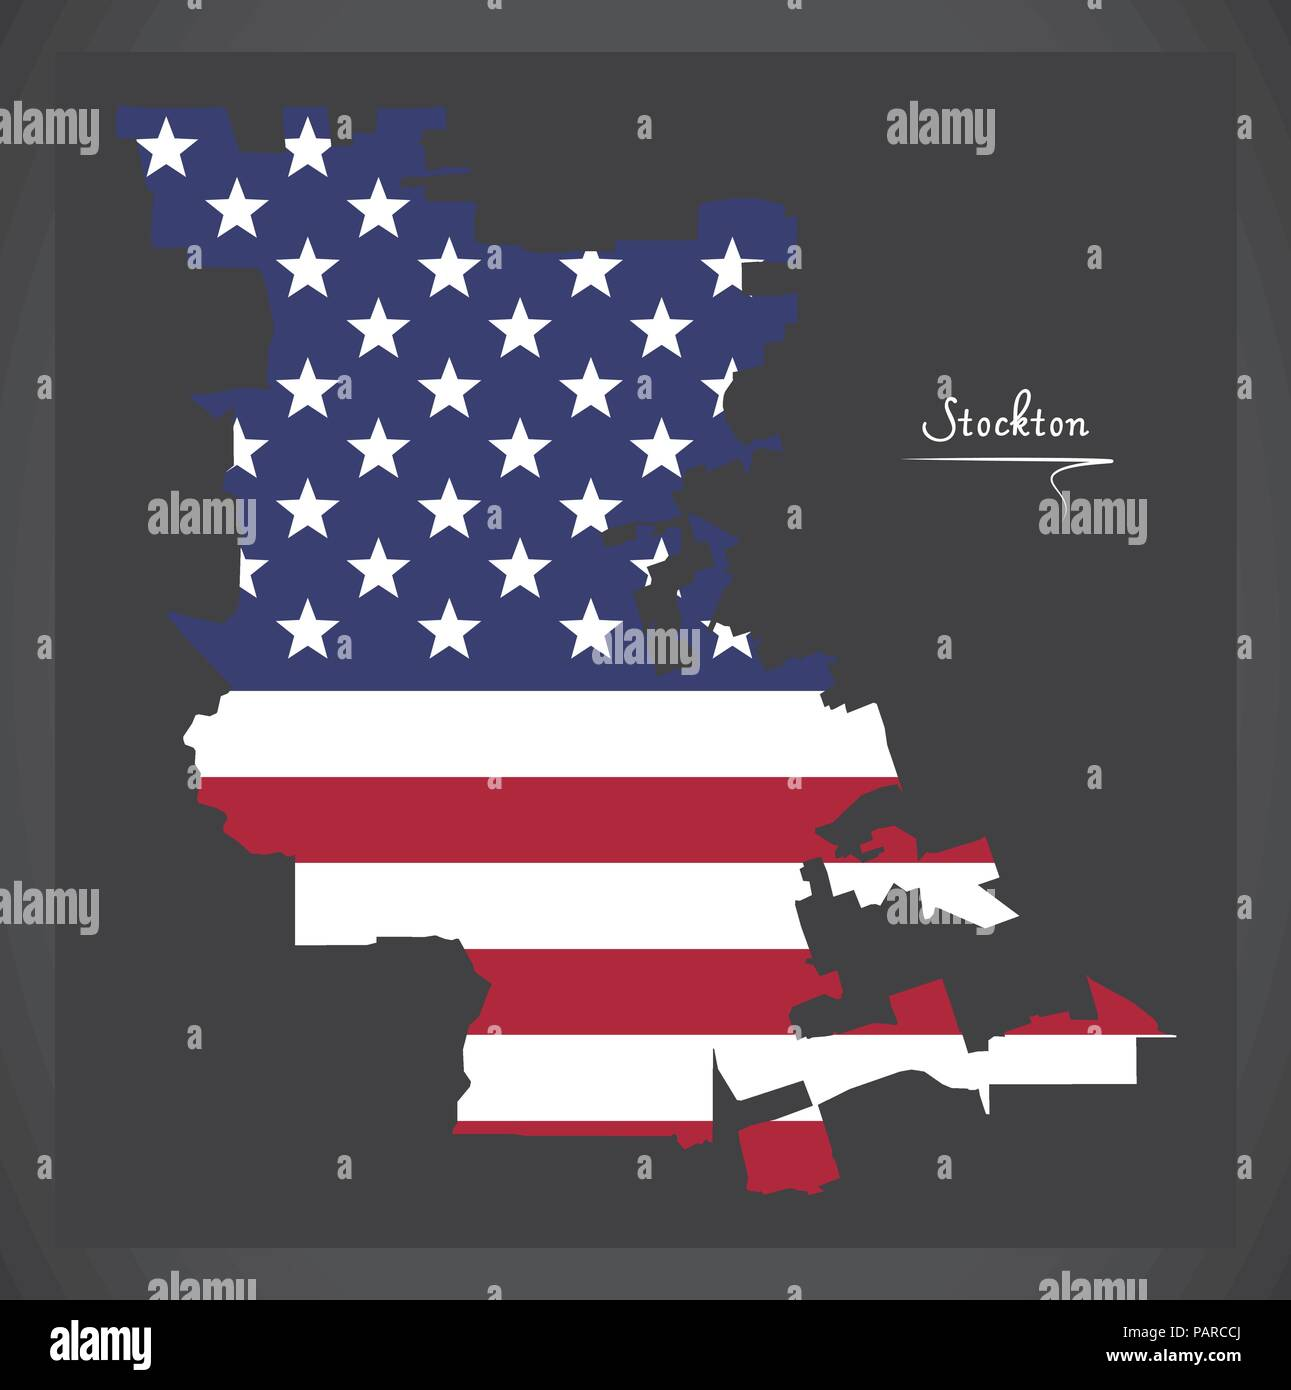 Stockton California map with American national flag ...